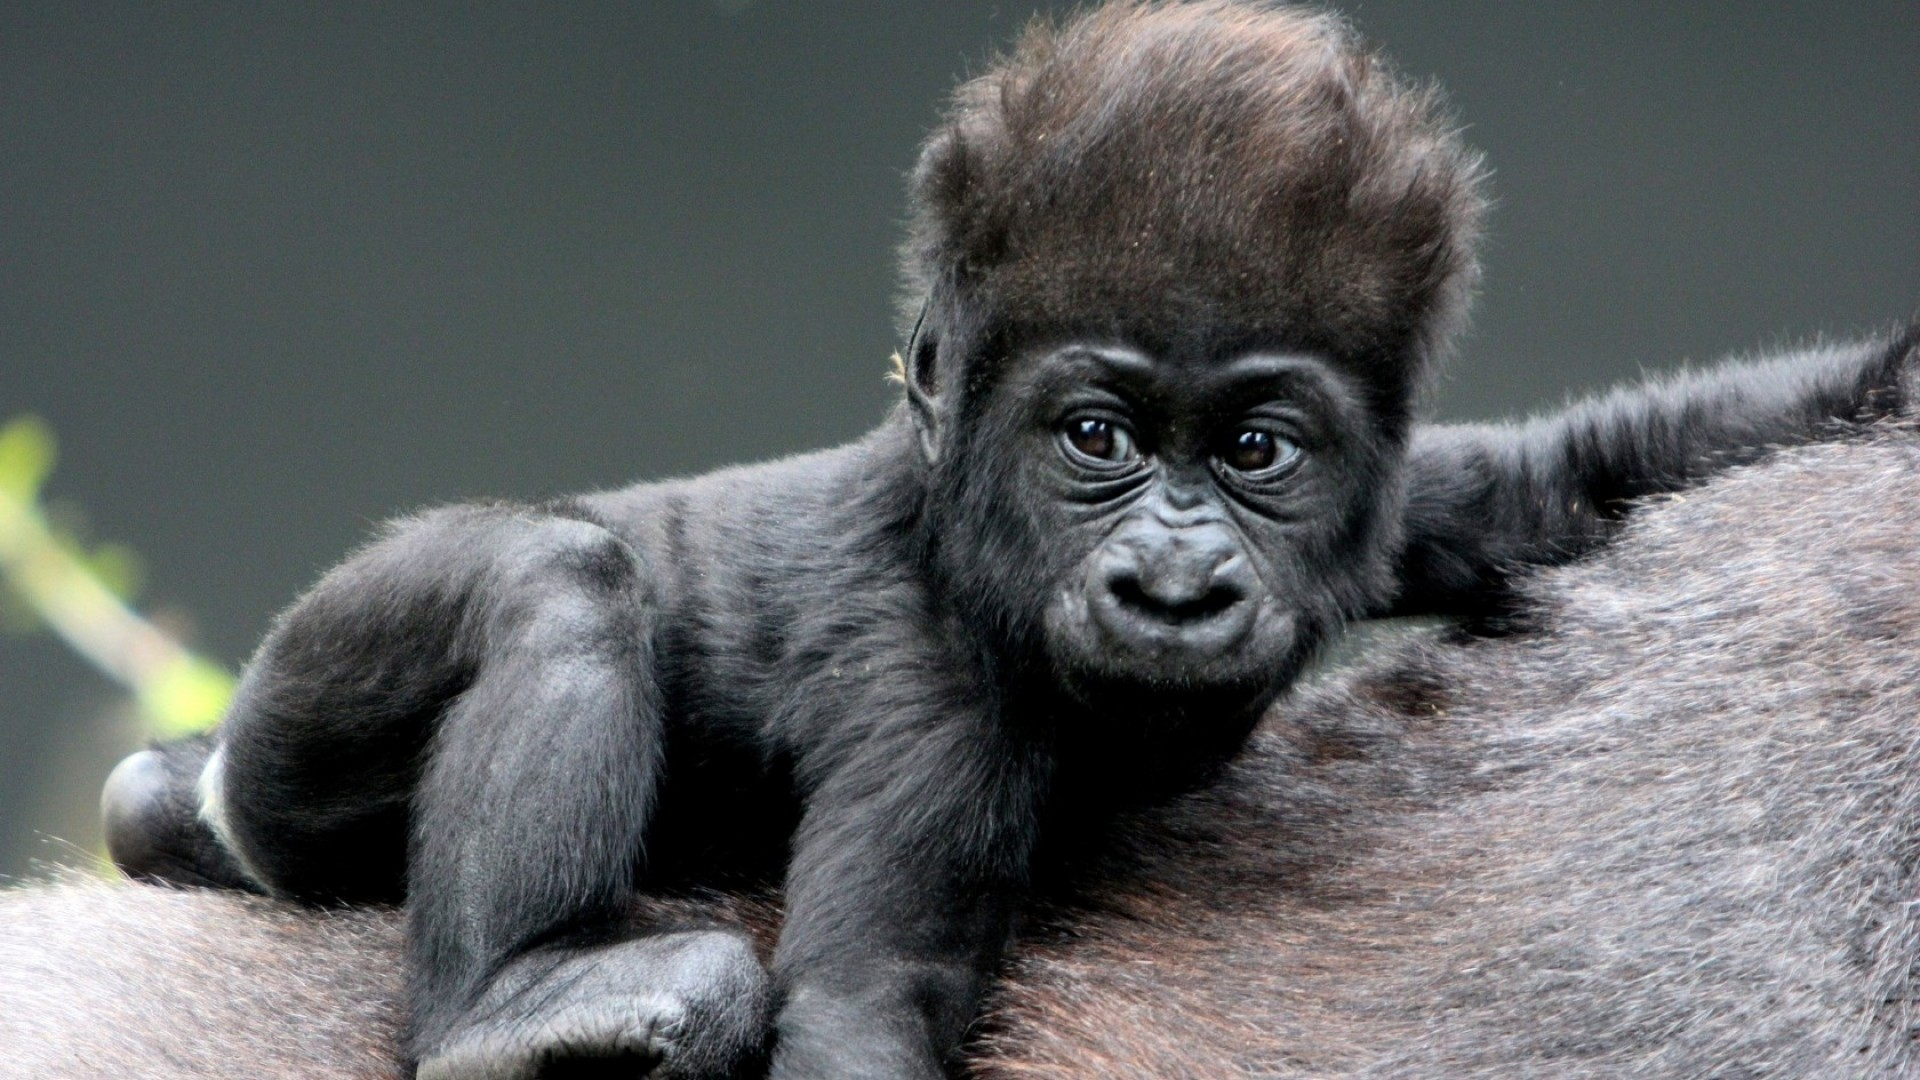 1920x1080 Preview wallpaper monkey, baby, gorilla, hair